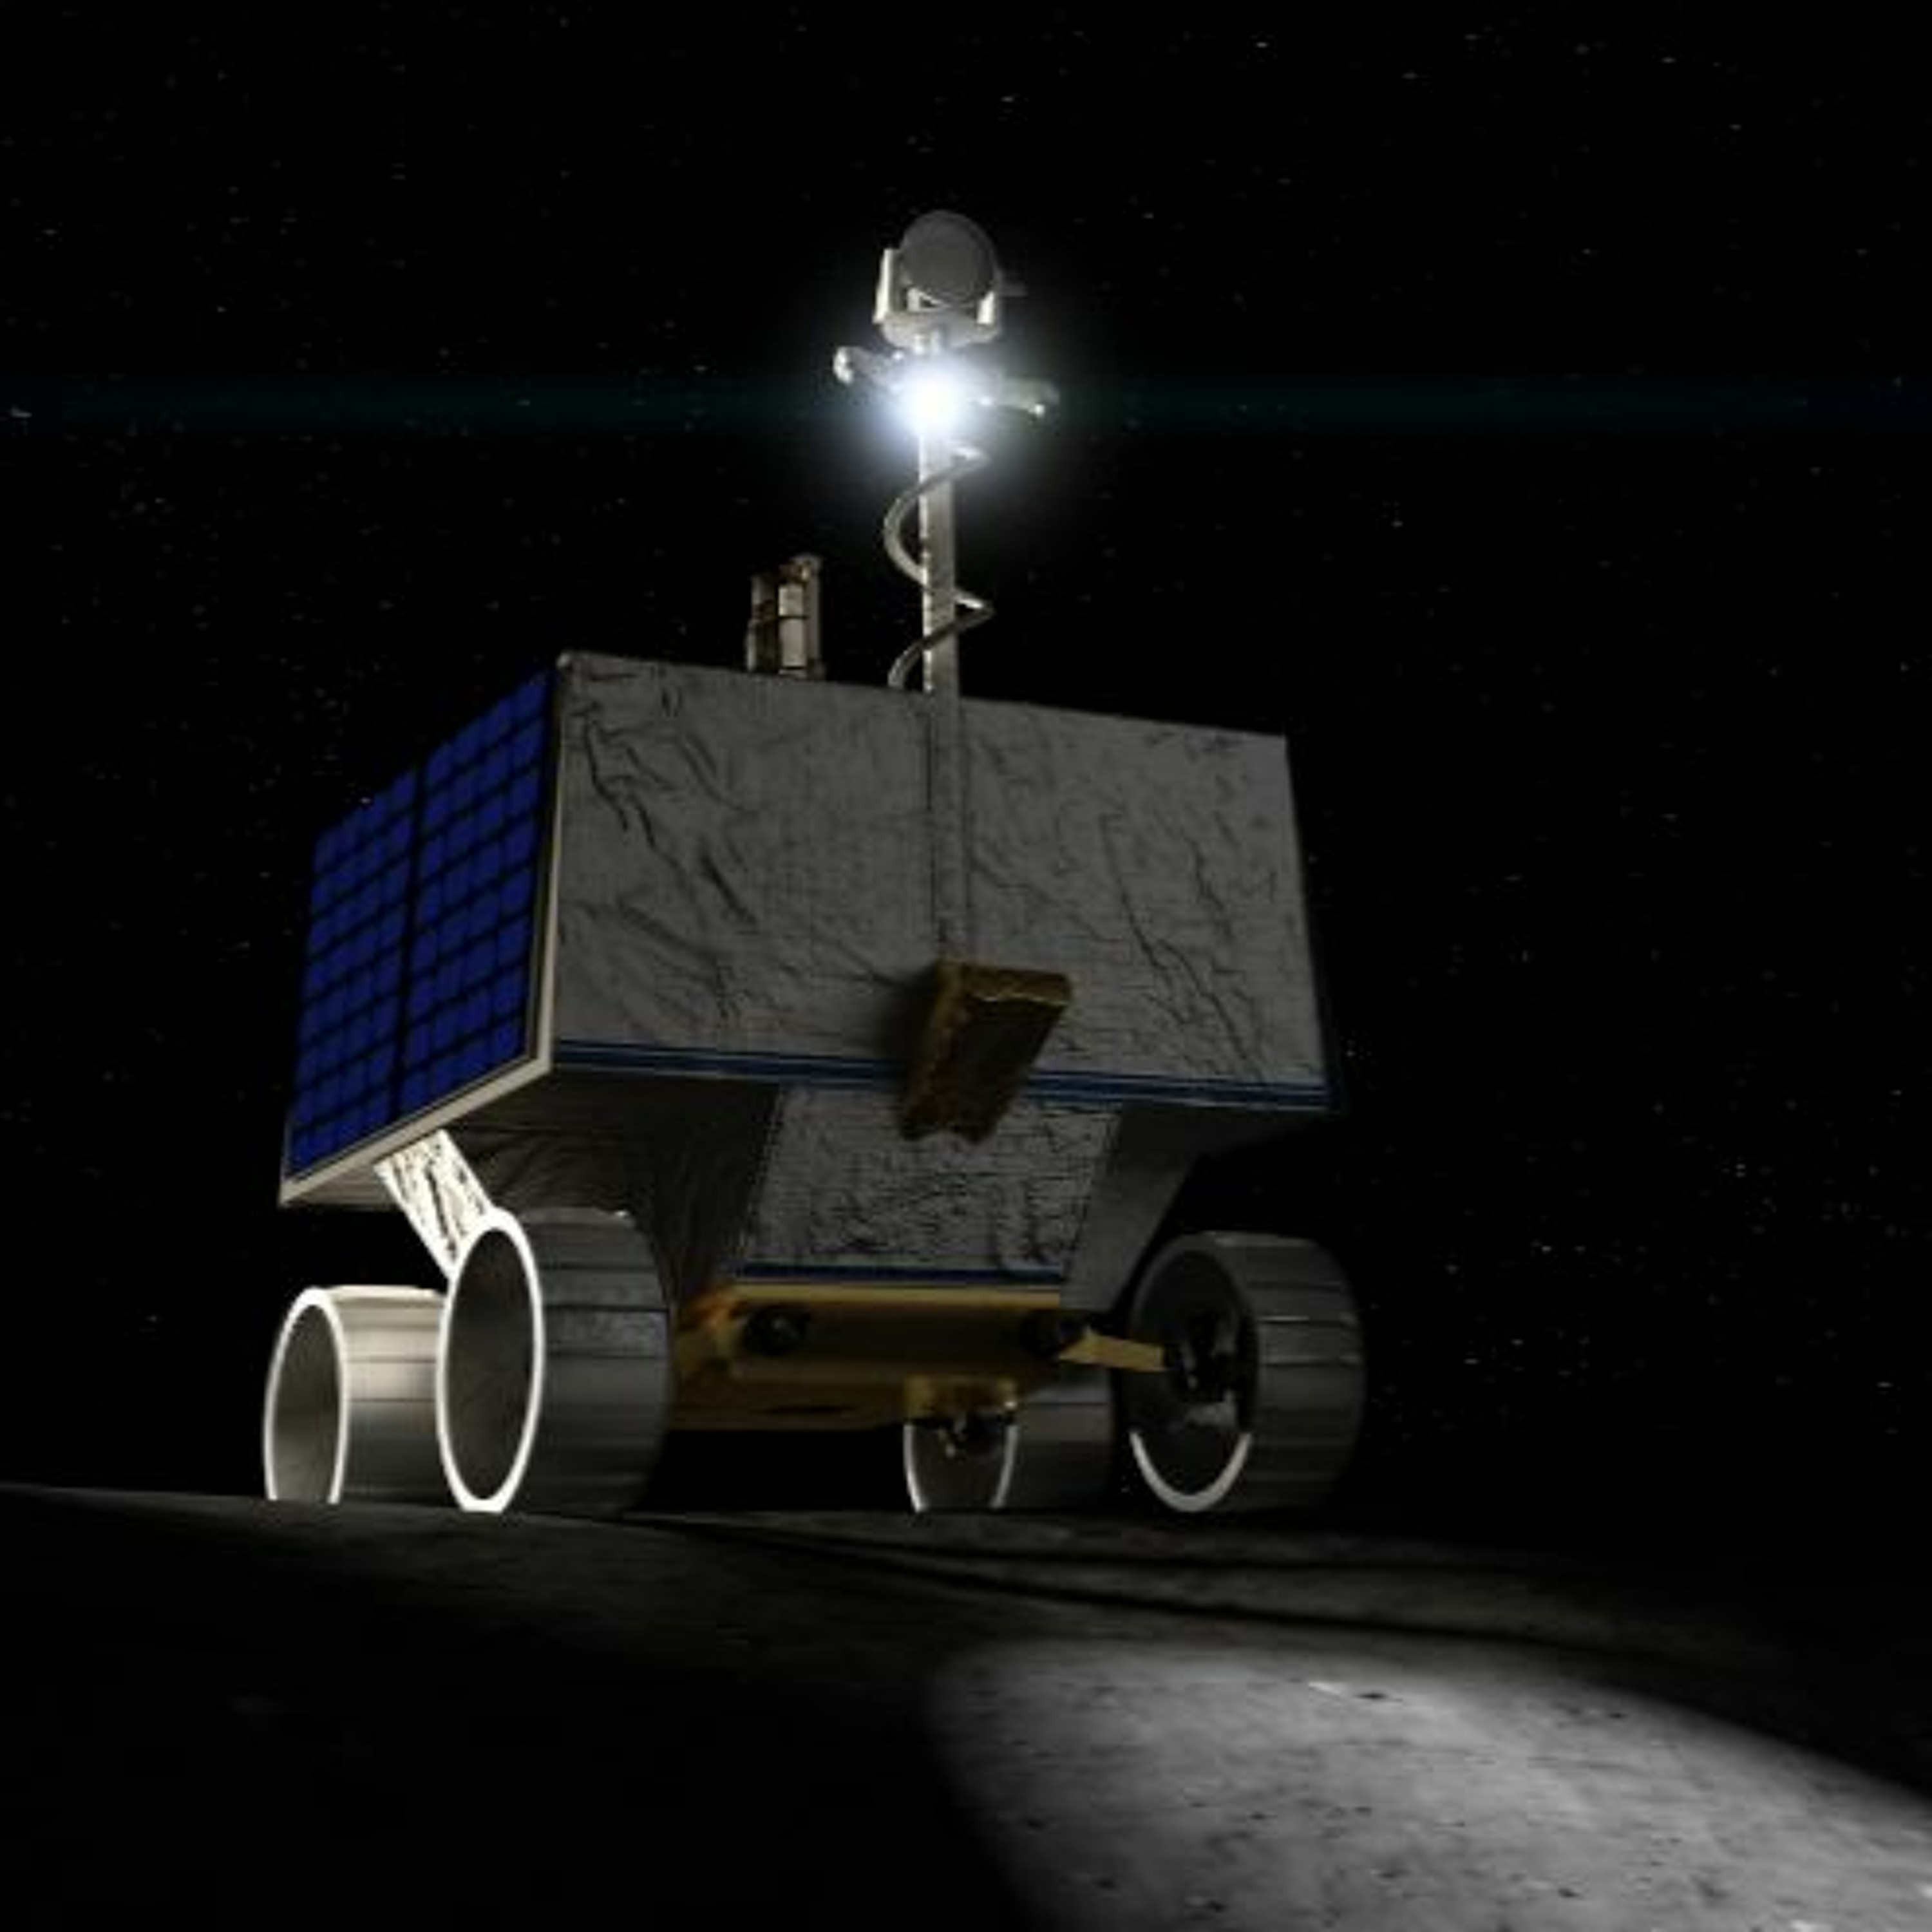 The Lunar VIPER rover and the space economy